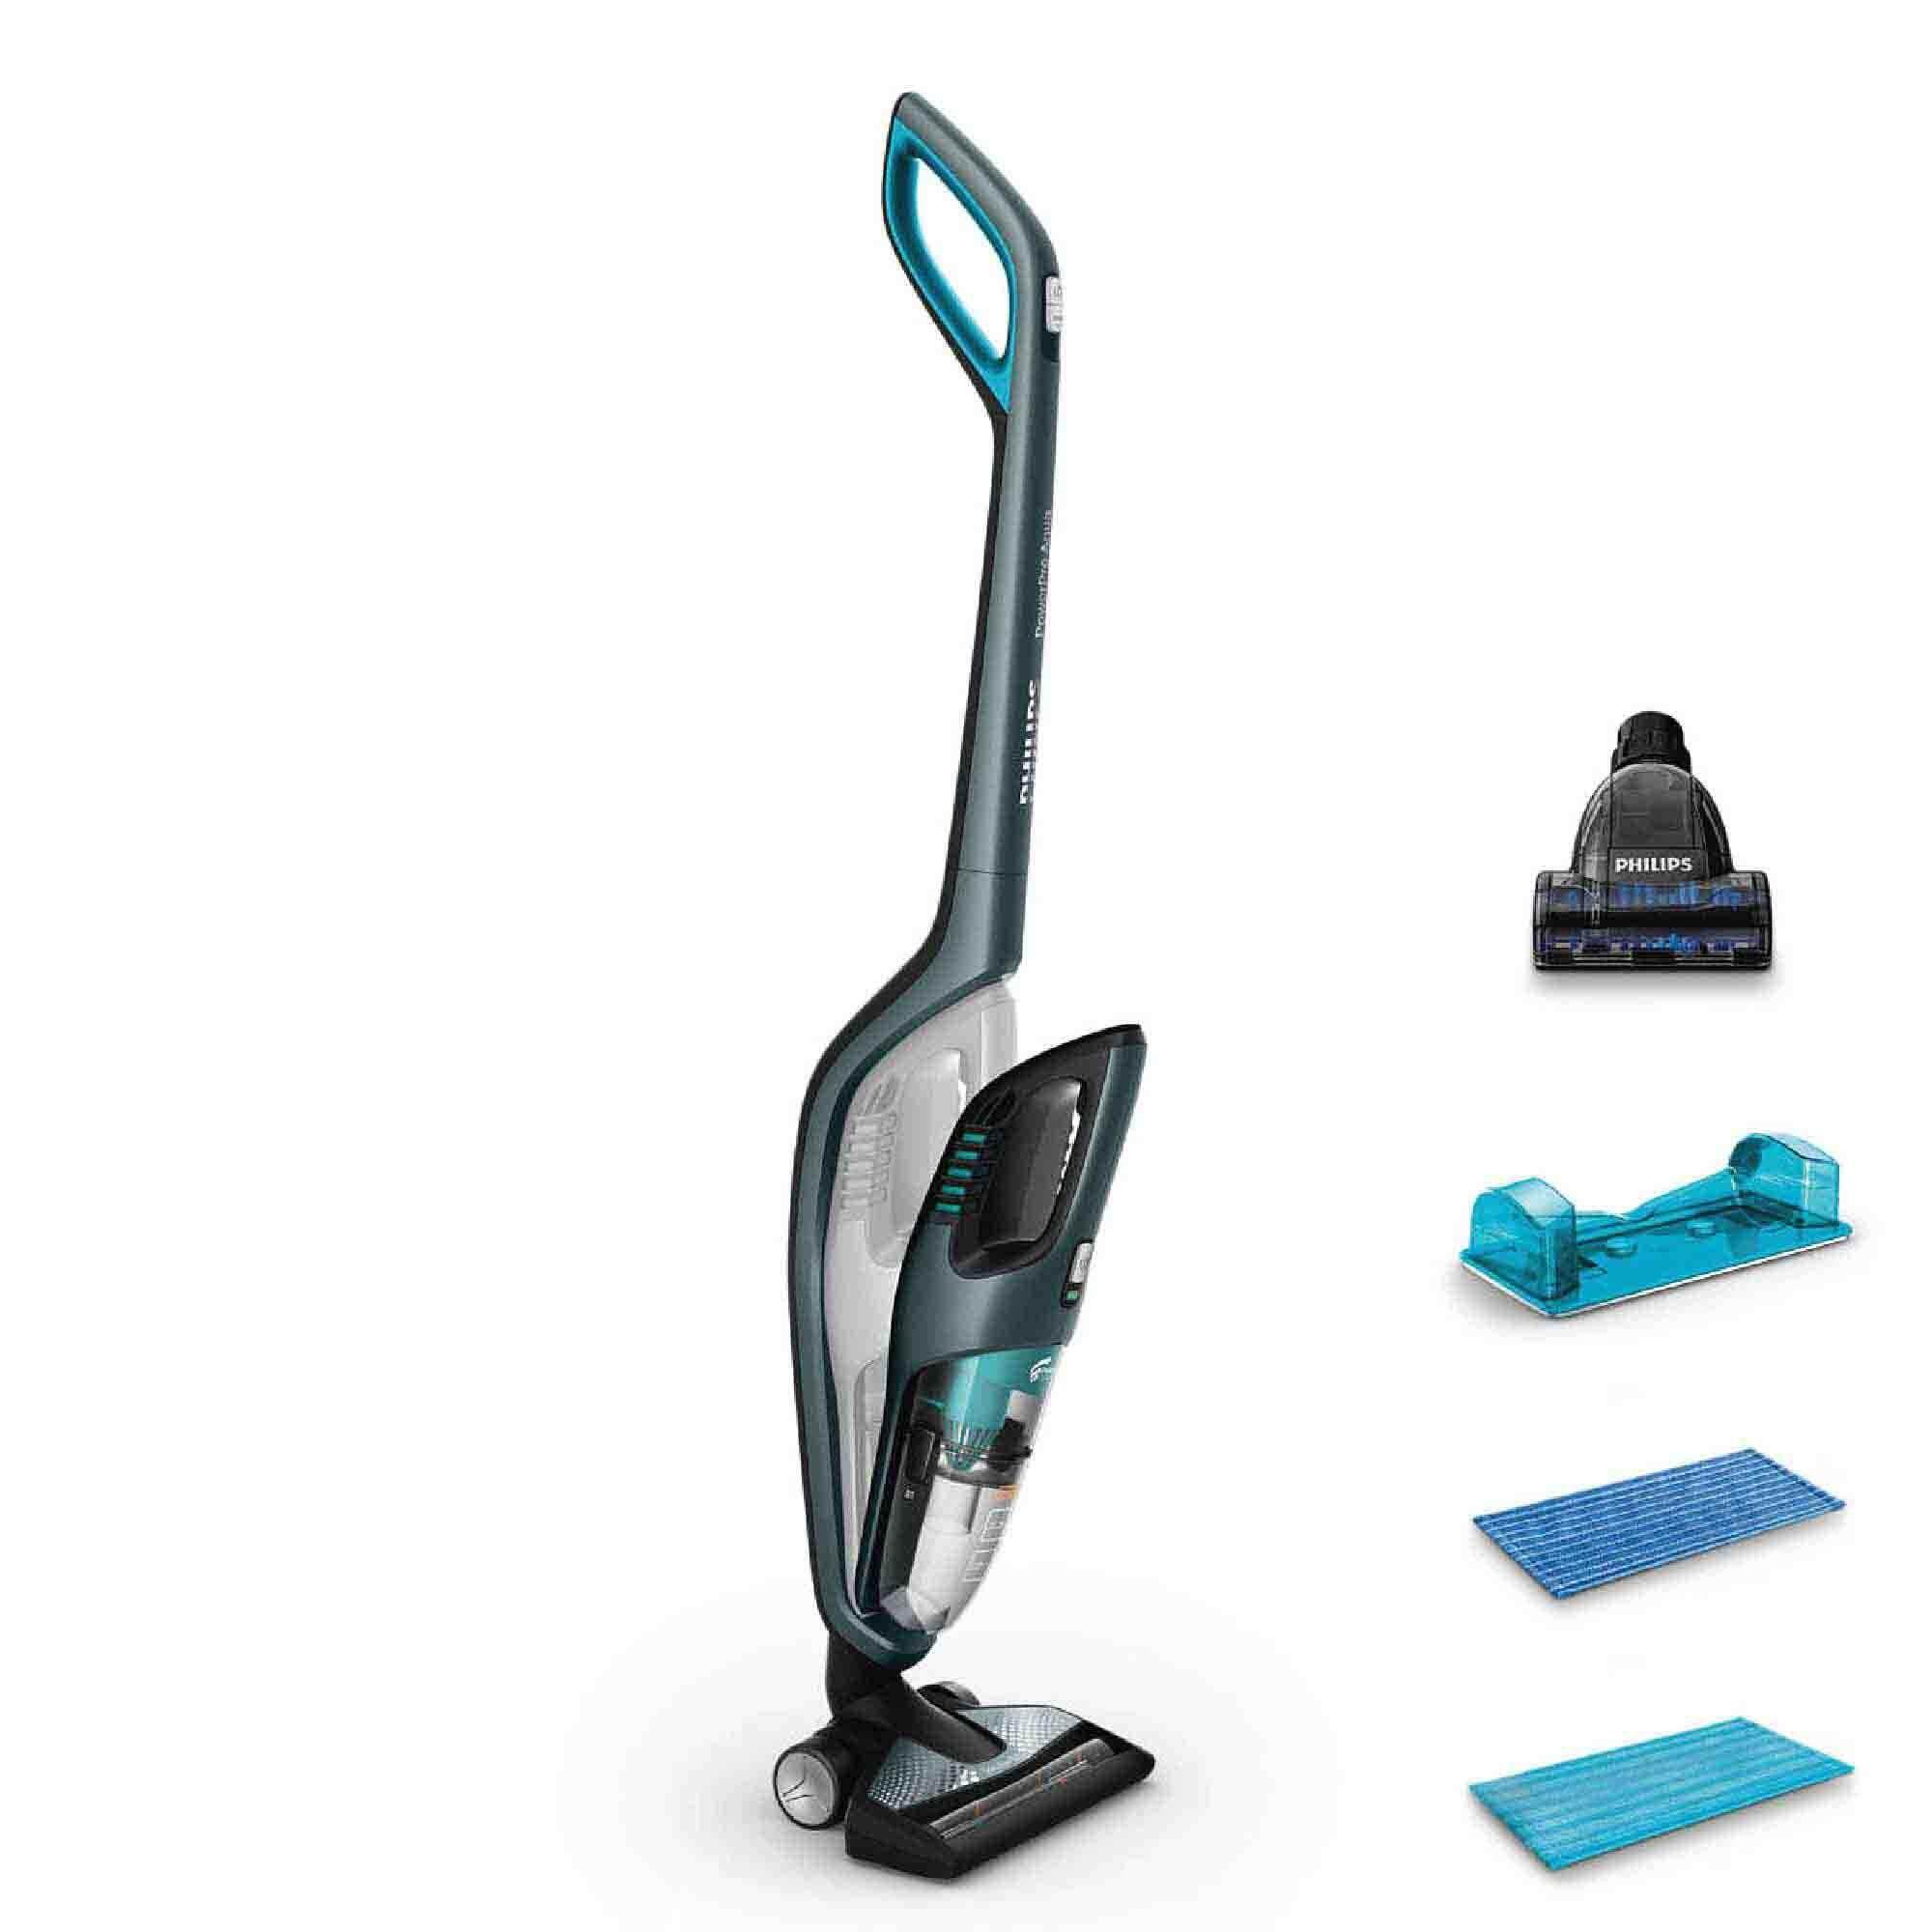 Philips 3-In-1 Vacuum Cleaner Mop FC6409 (2018 New Model) Handheld